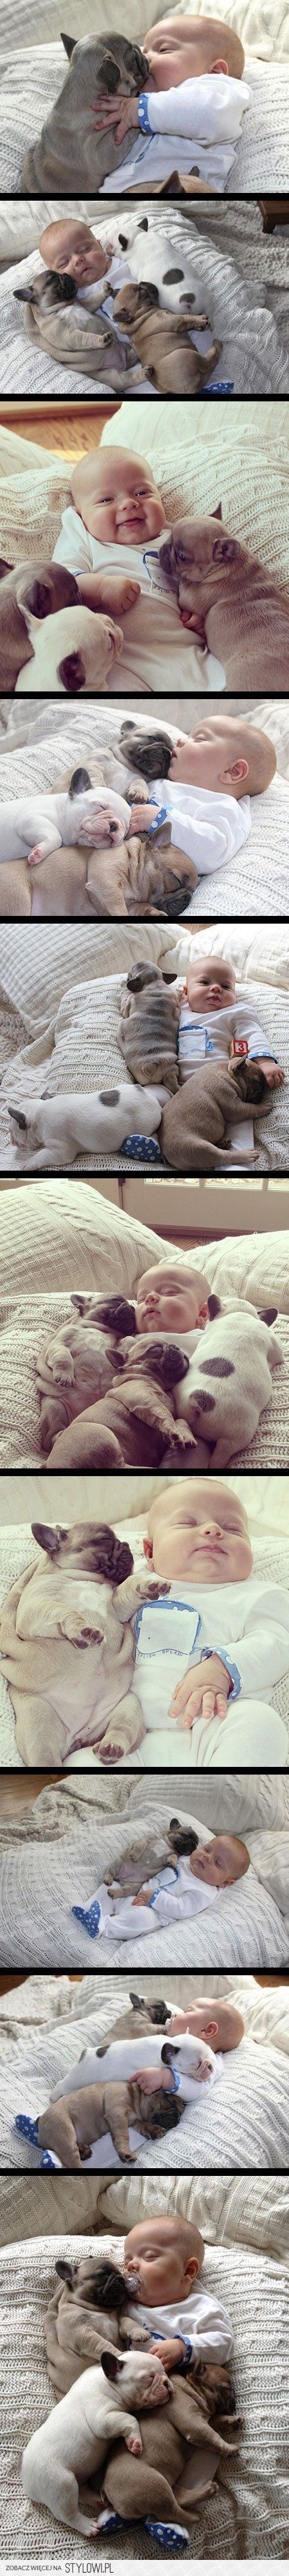 Baby And Three Puppy Dogs Fantastic